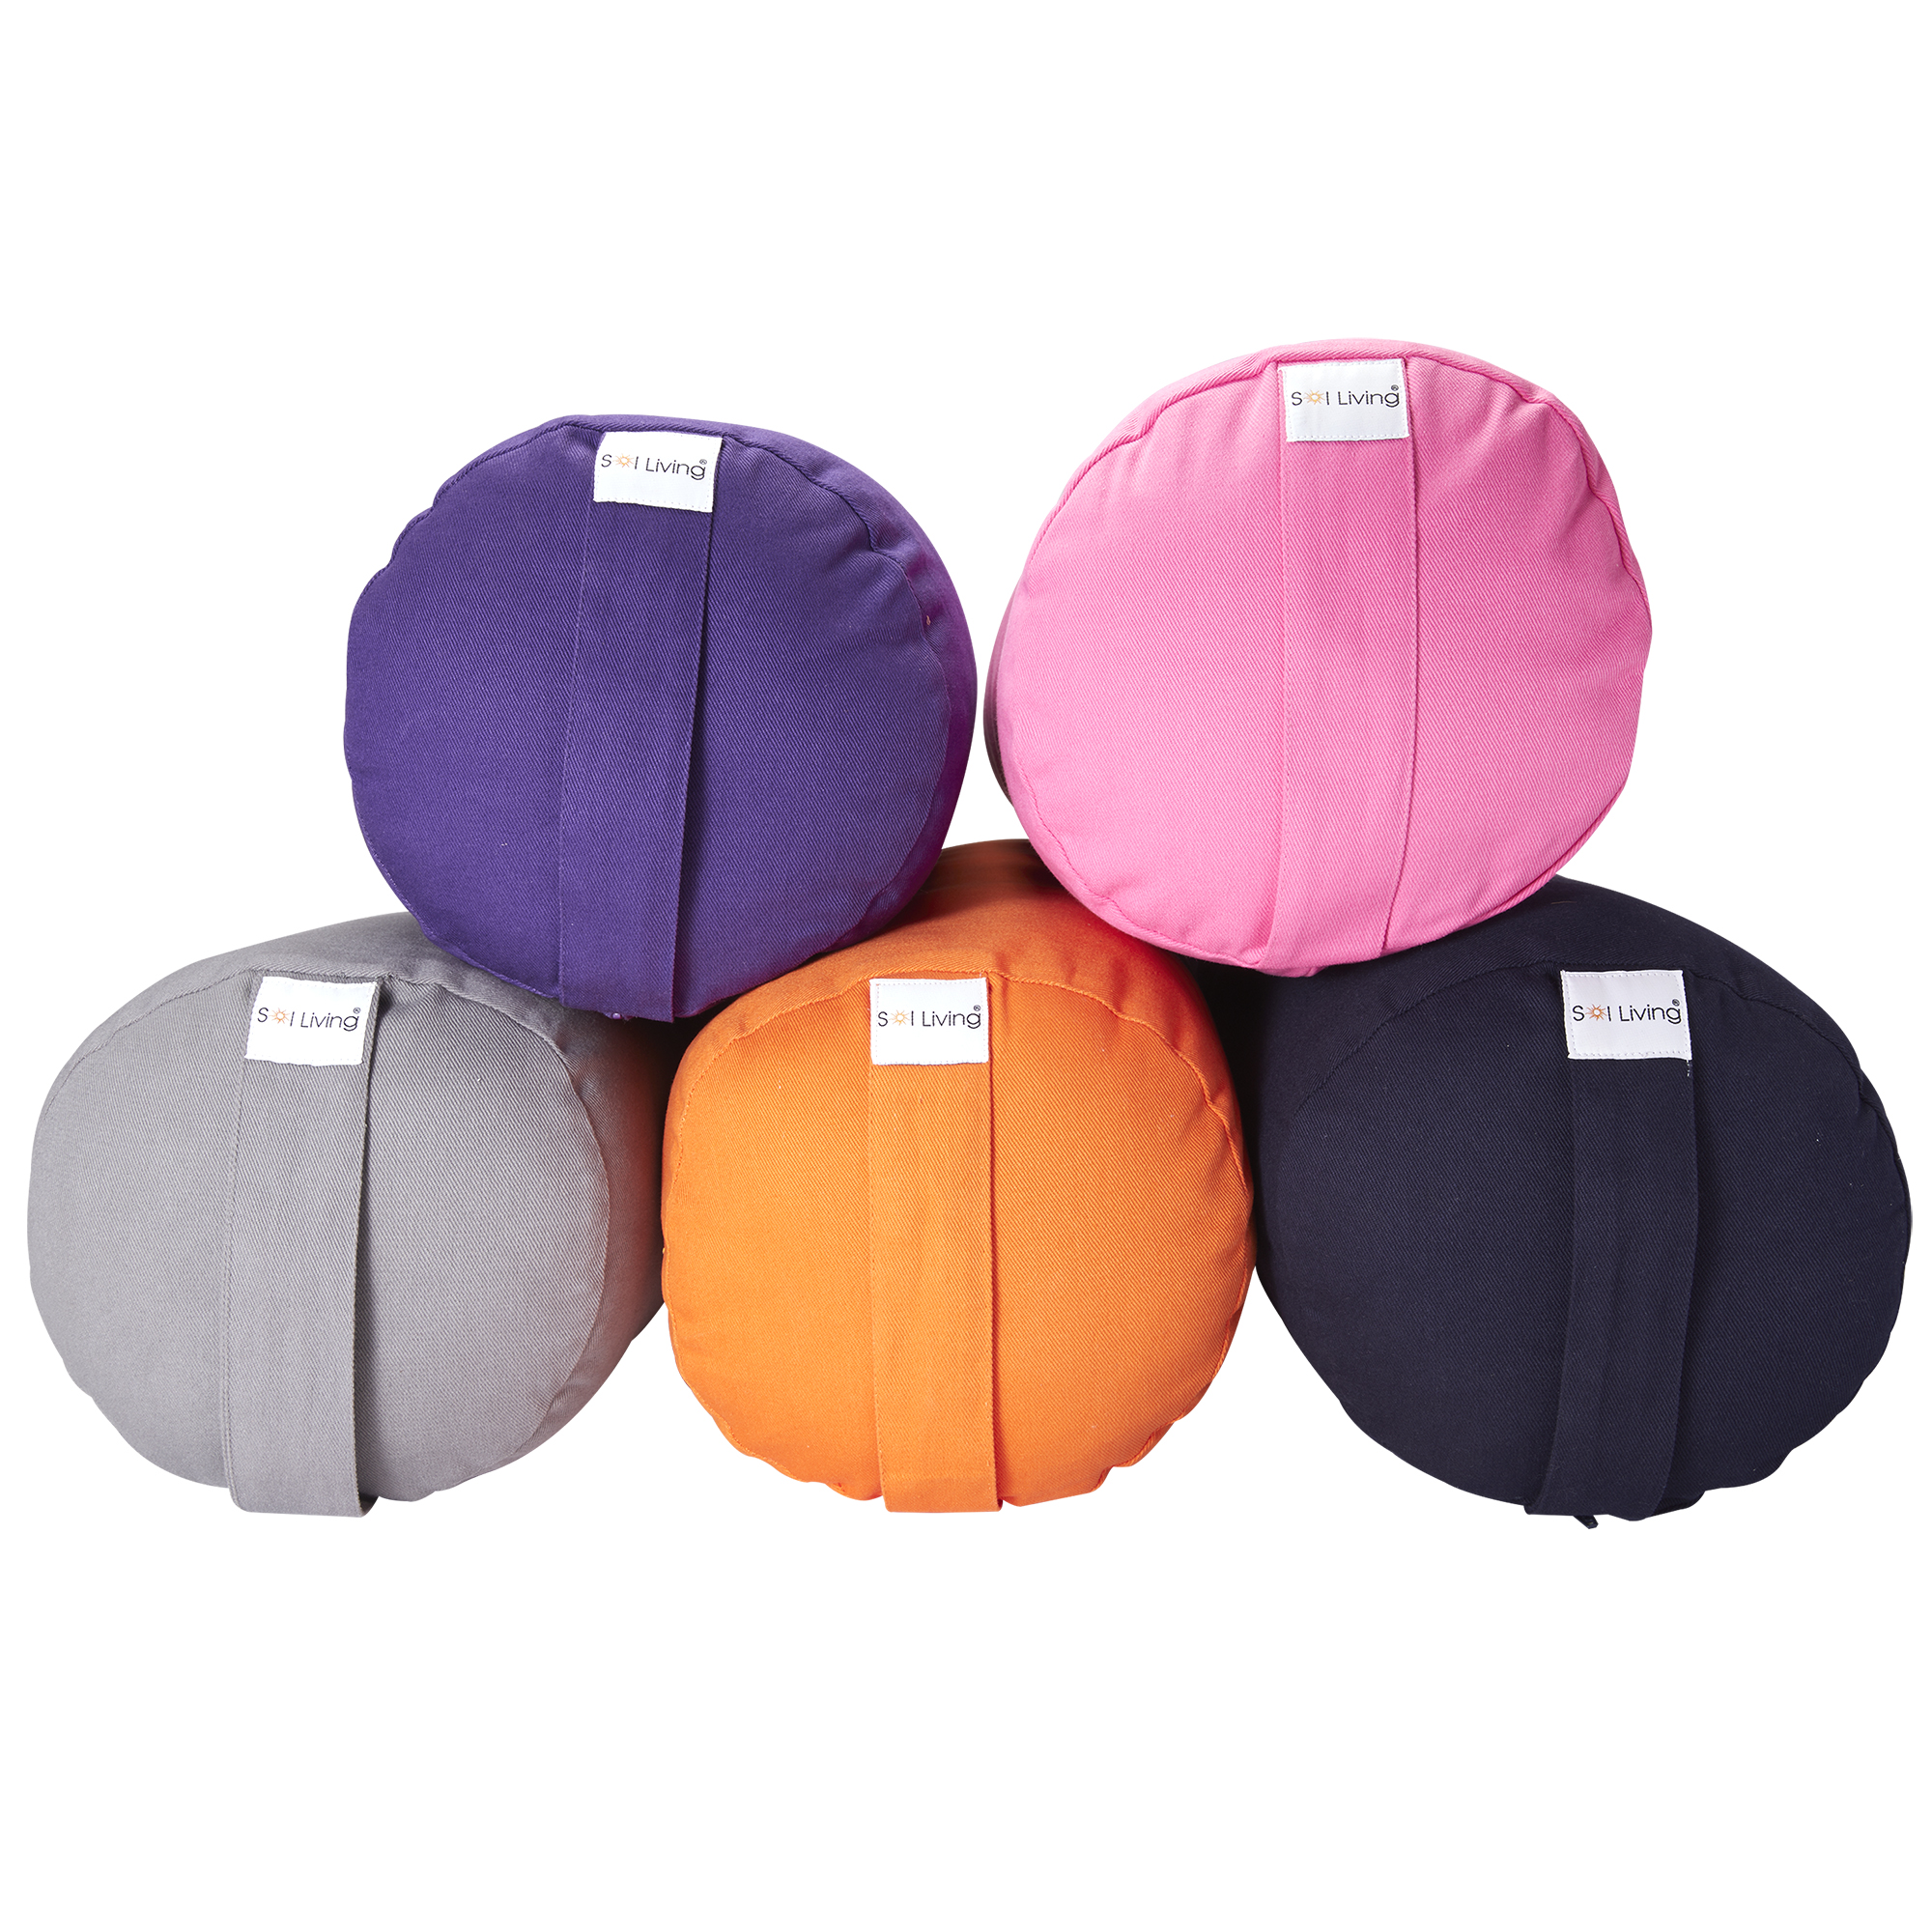 Yoga Bolster Sustainable Bolster Exporters India Ehg 360